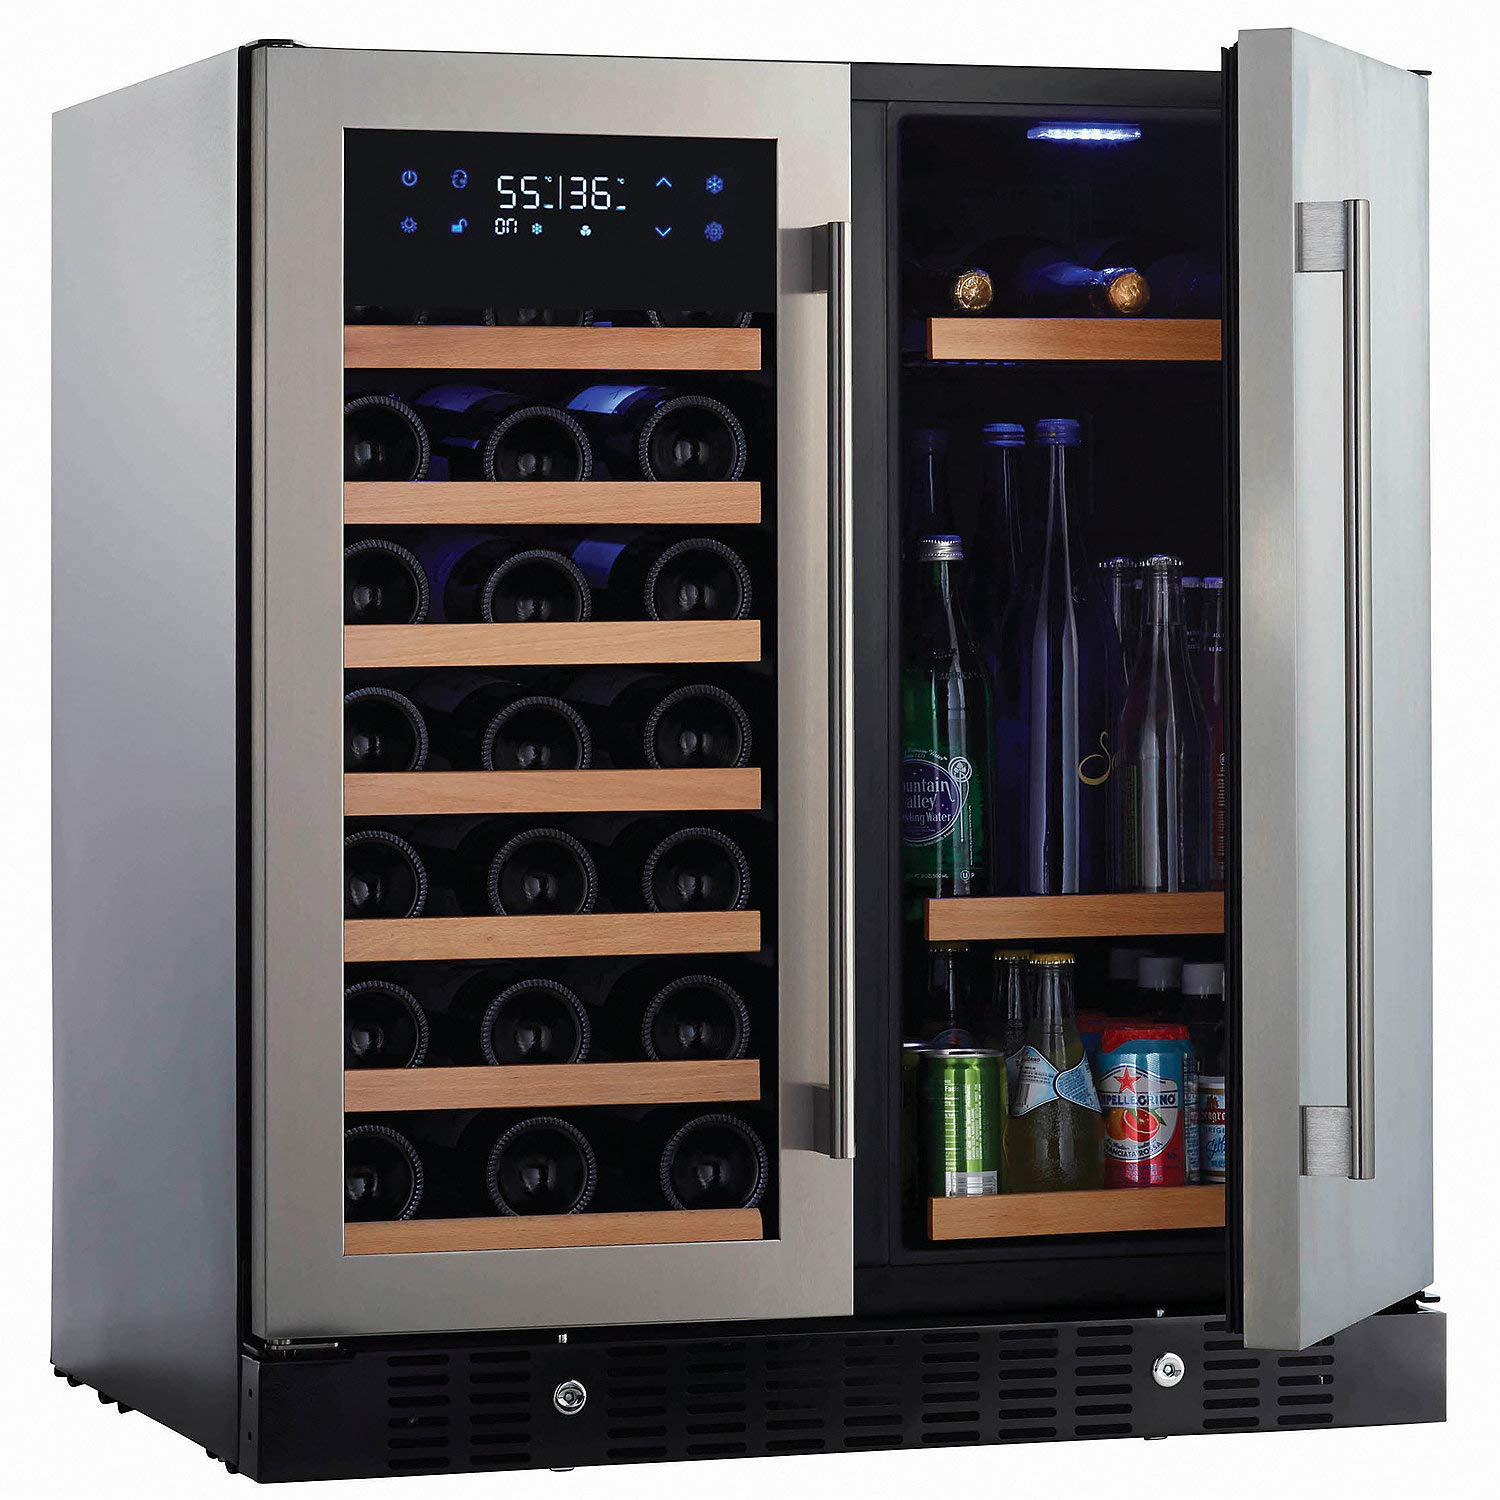 N'FINITY PRO HDX by Wine Enthusiast Wine & Beverage Center - Holds 90 Cans & 35 Wine Bottles - Freestanding or Built-In Wine Refrigerator by N FINITY